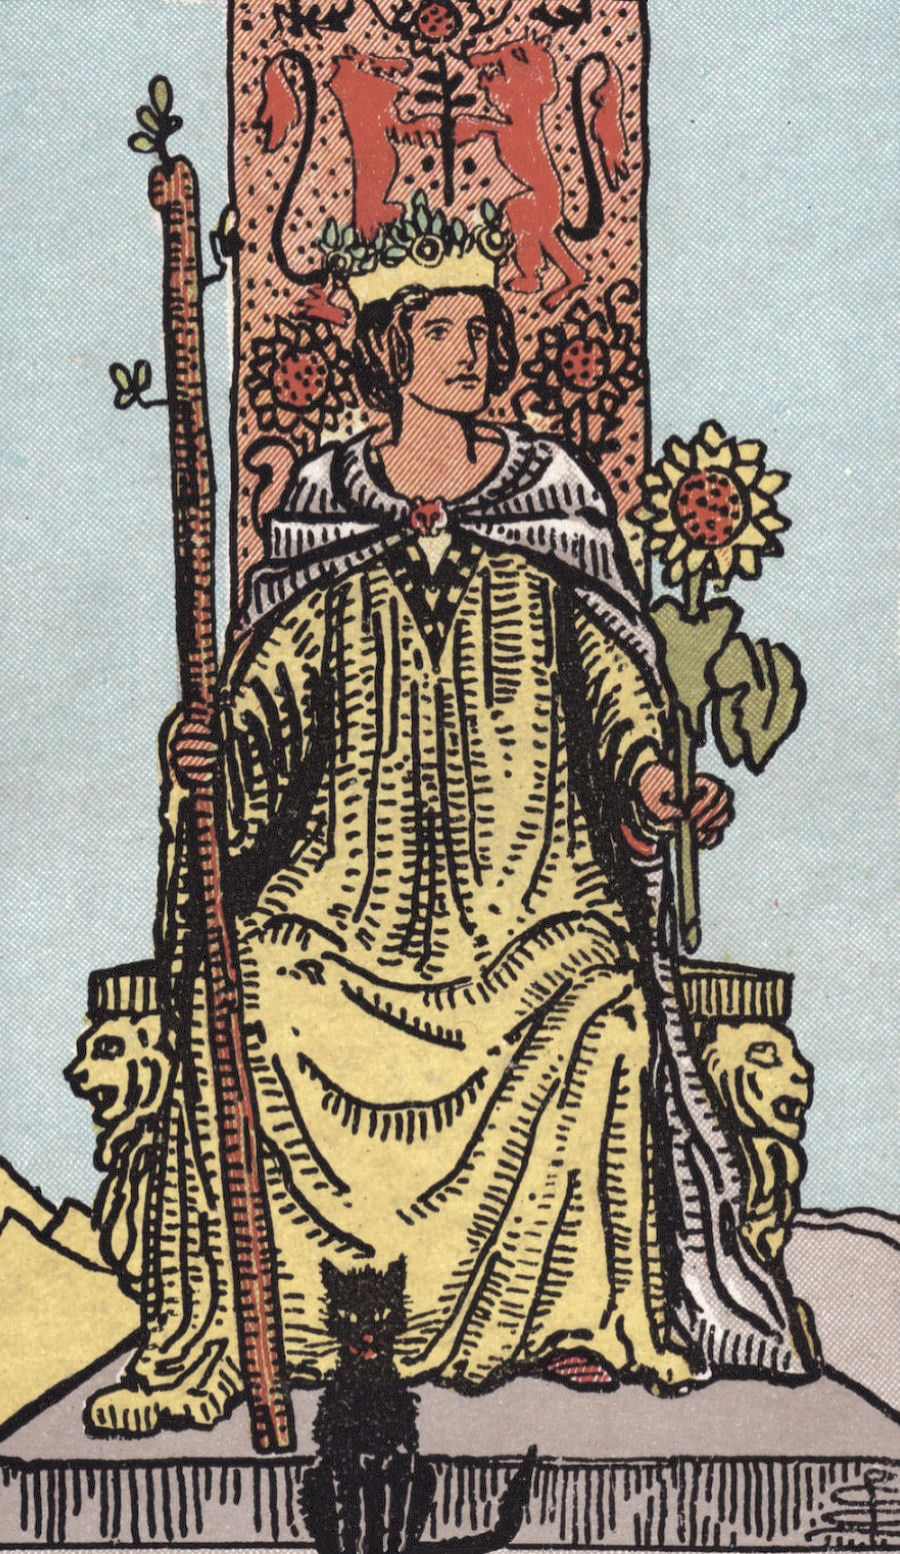 Rider Waite Smith Queen of Wands Tarot Card Meaning